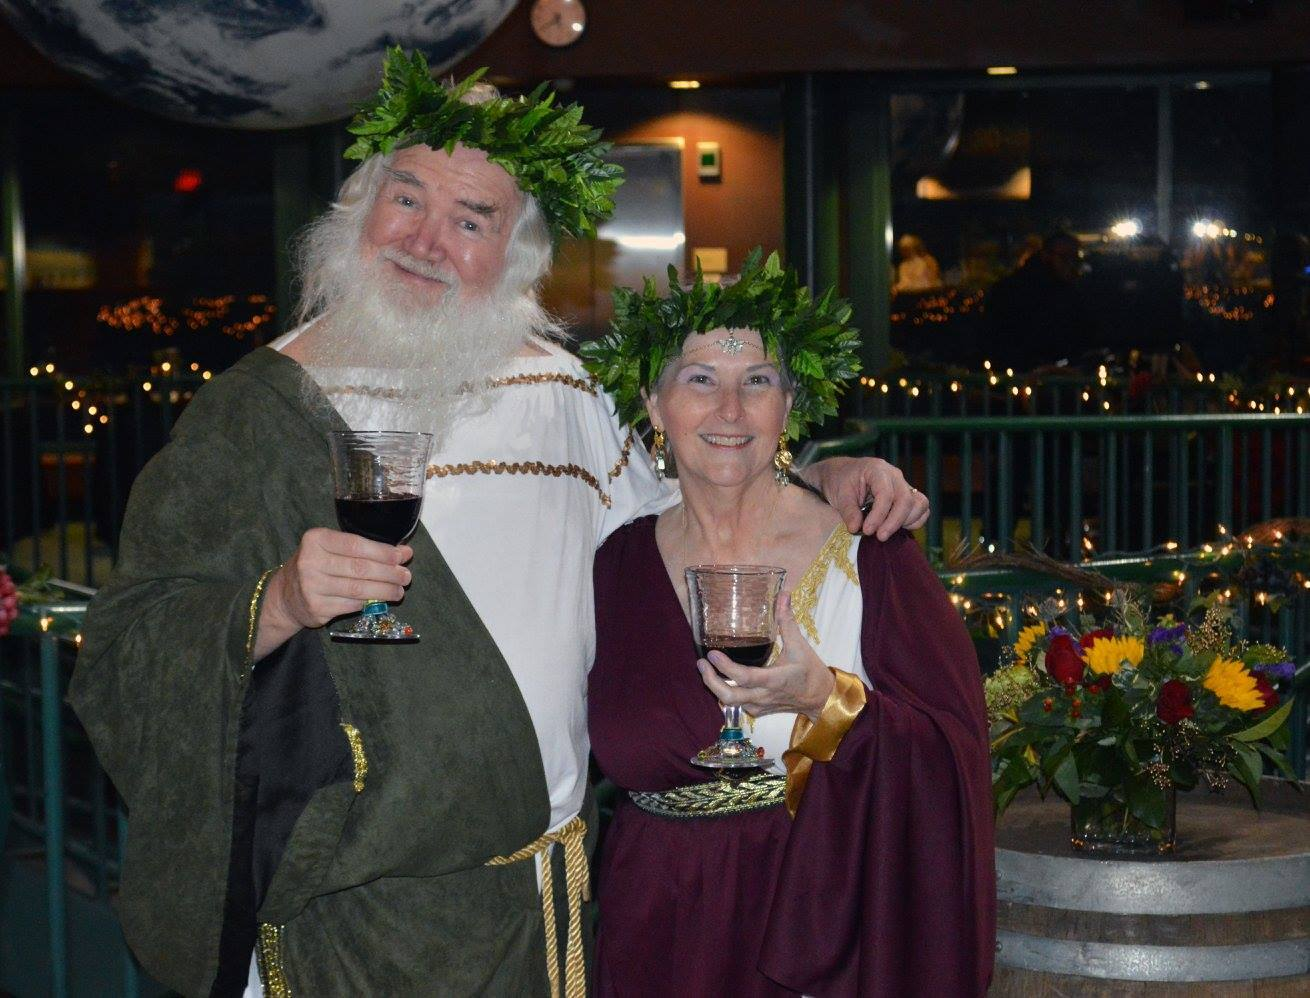 Photos: Bacchus Wine & Food Festival returns to Virginia Living Museum on February 7